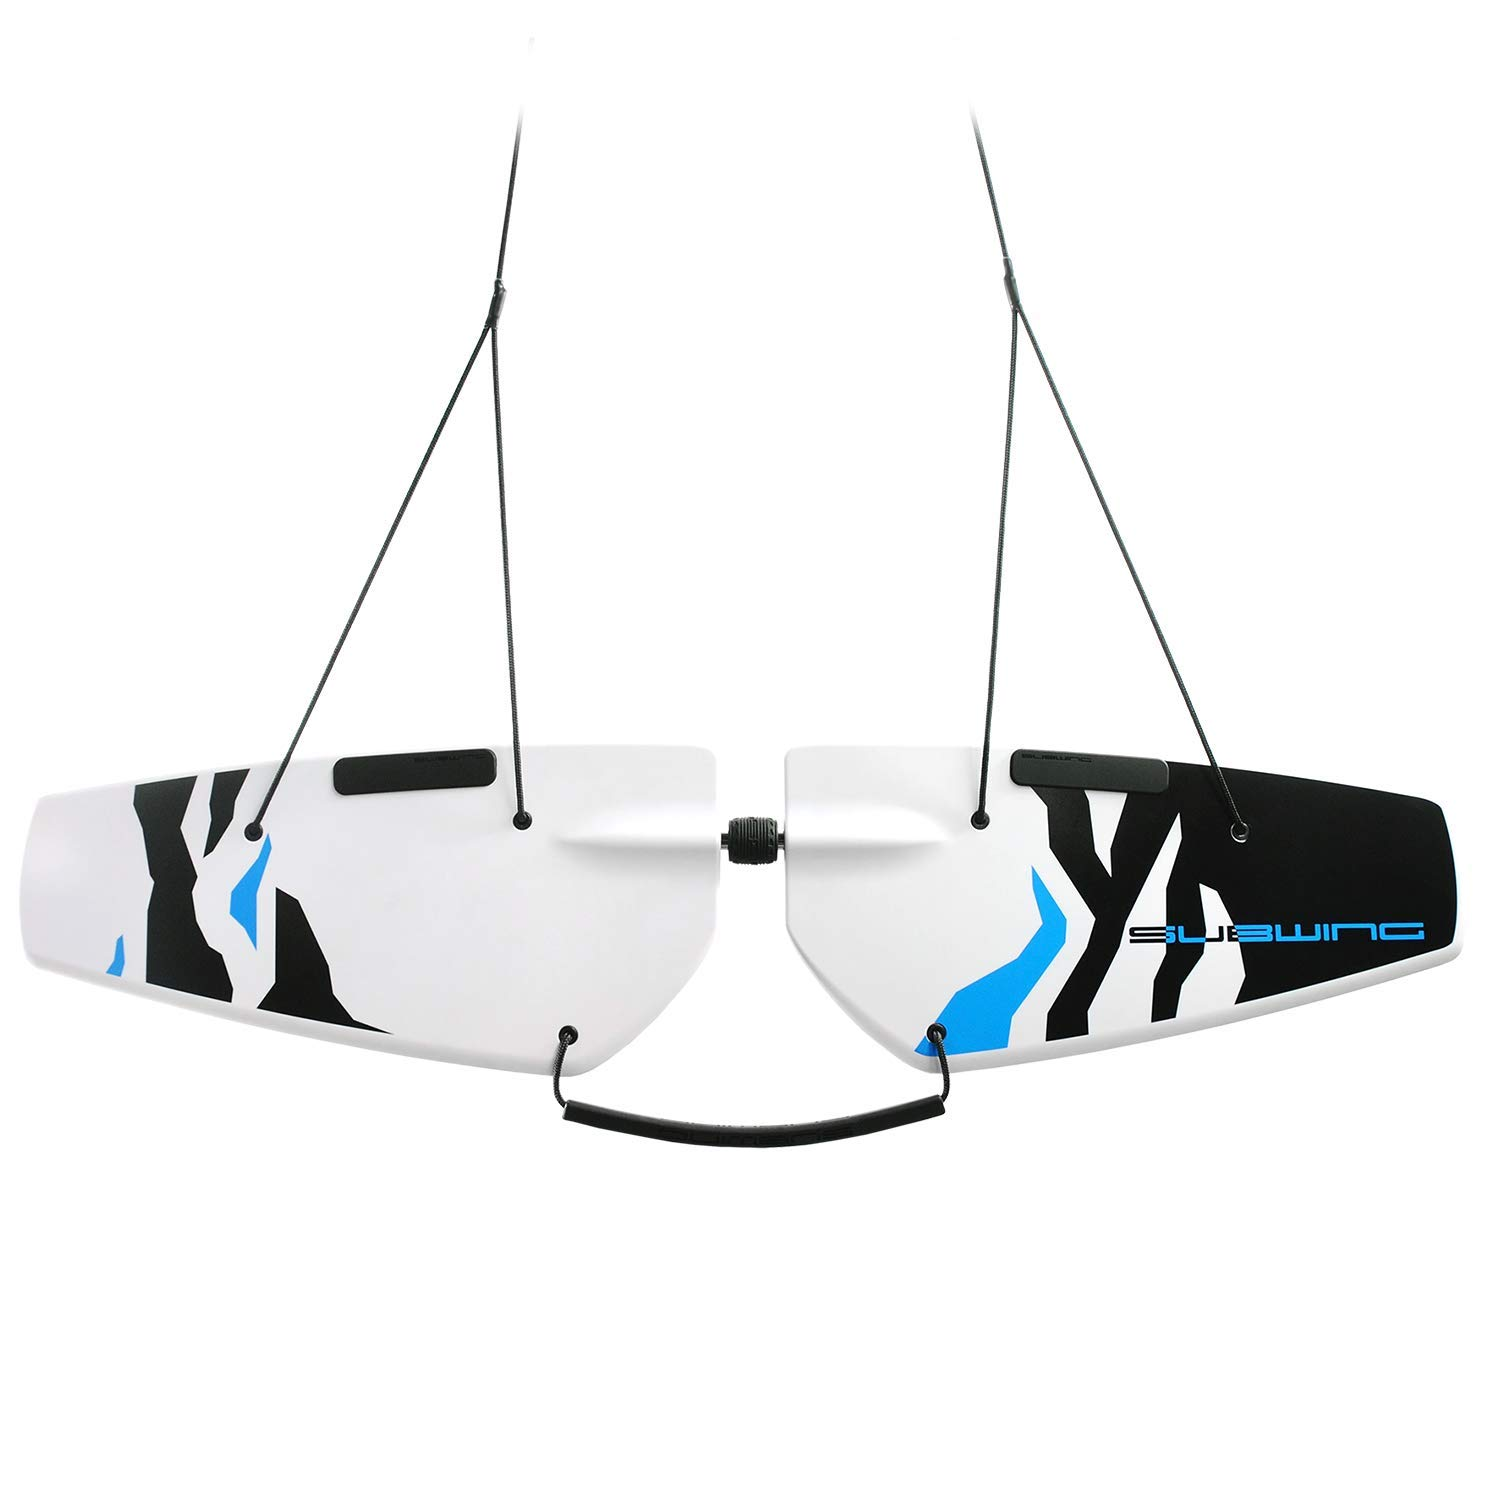 Subwing - Fly Underwater - Towable Watersports Board For Boats - 1, 2, 3, 4 Person Tow